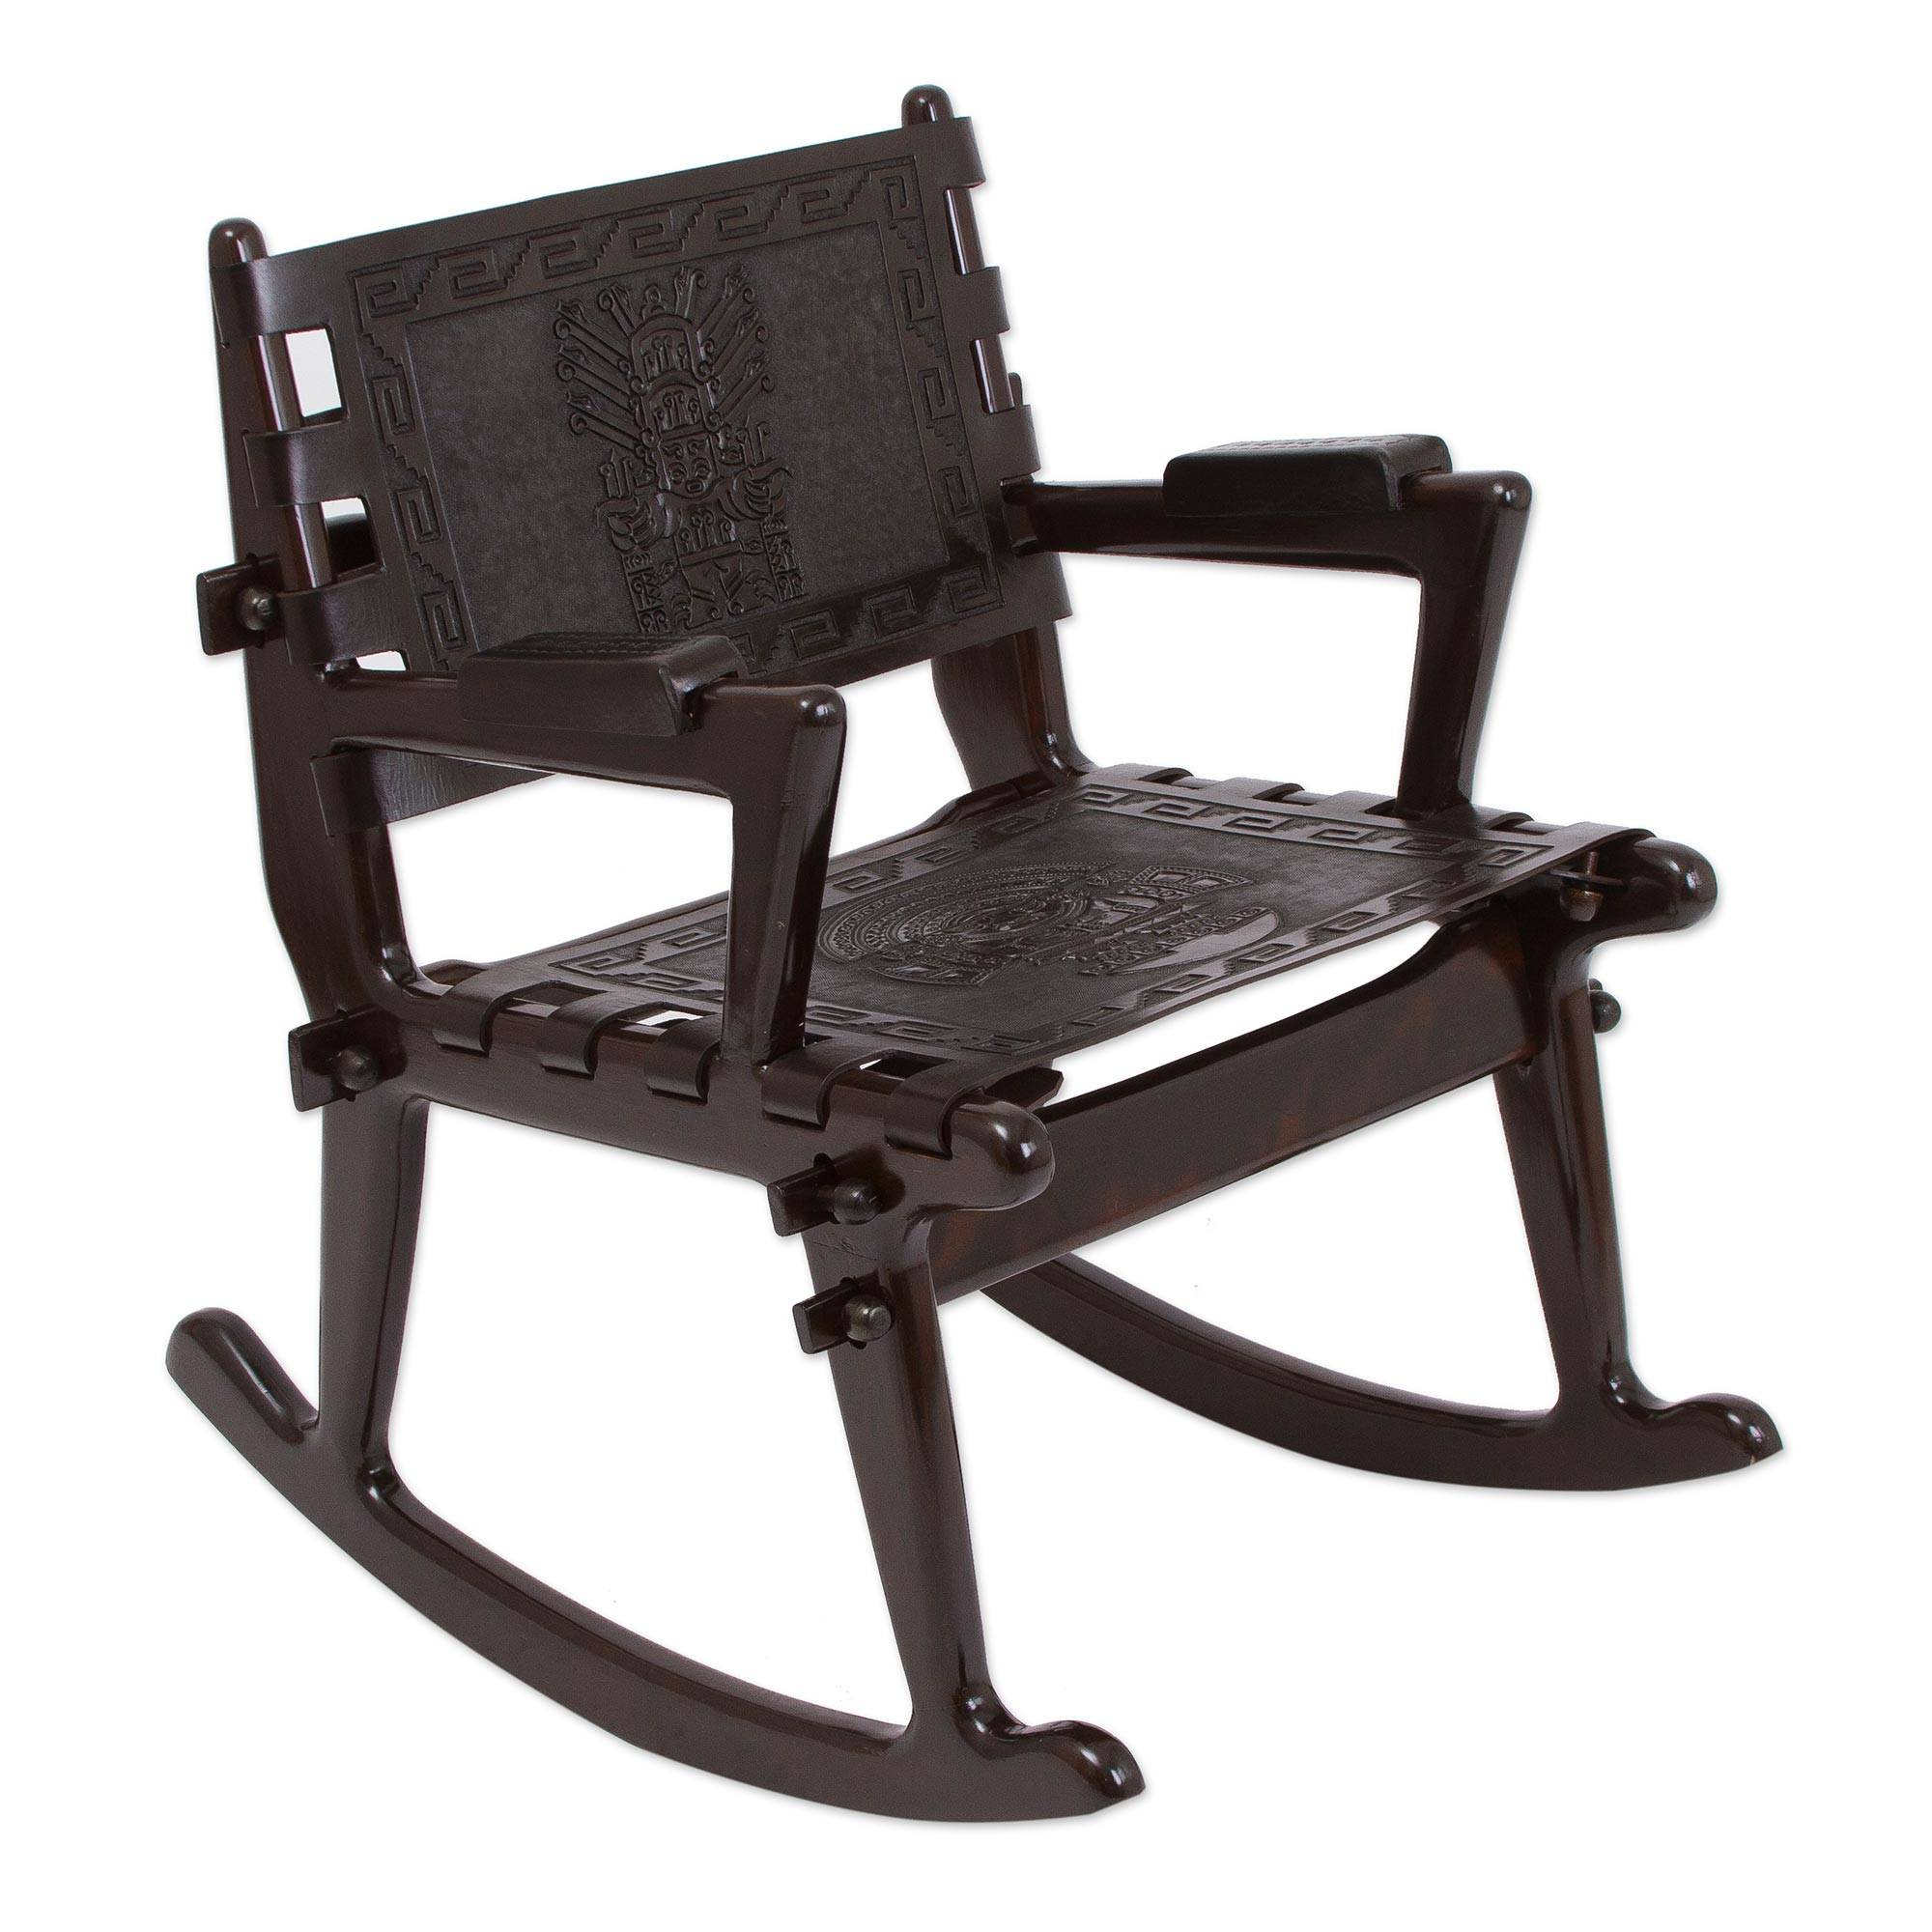 Inspiration about Tornillo Wood And Leather Rocking Chair, 'chavin Deities' Regarding Wood And Leather Chavin Deities Rocking Chairs (#1 of 20)